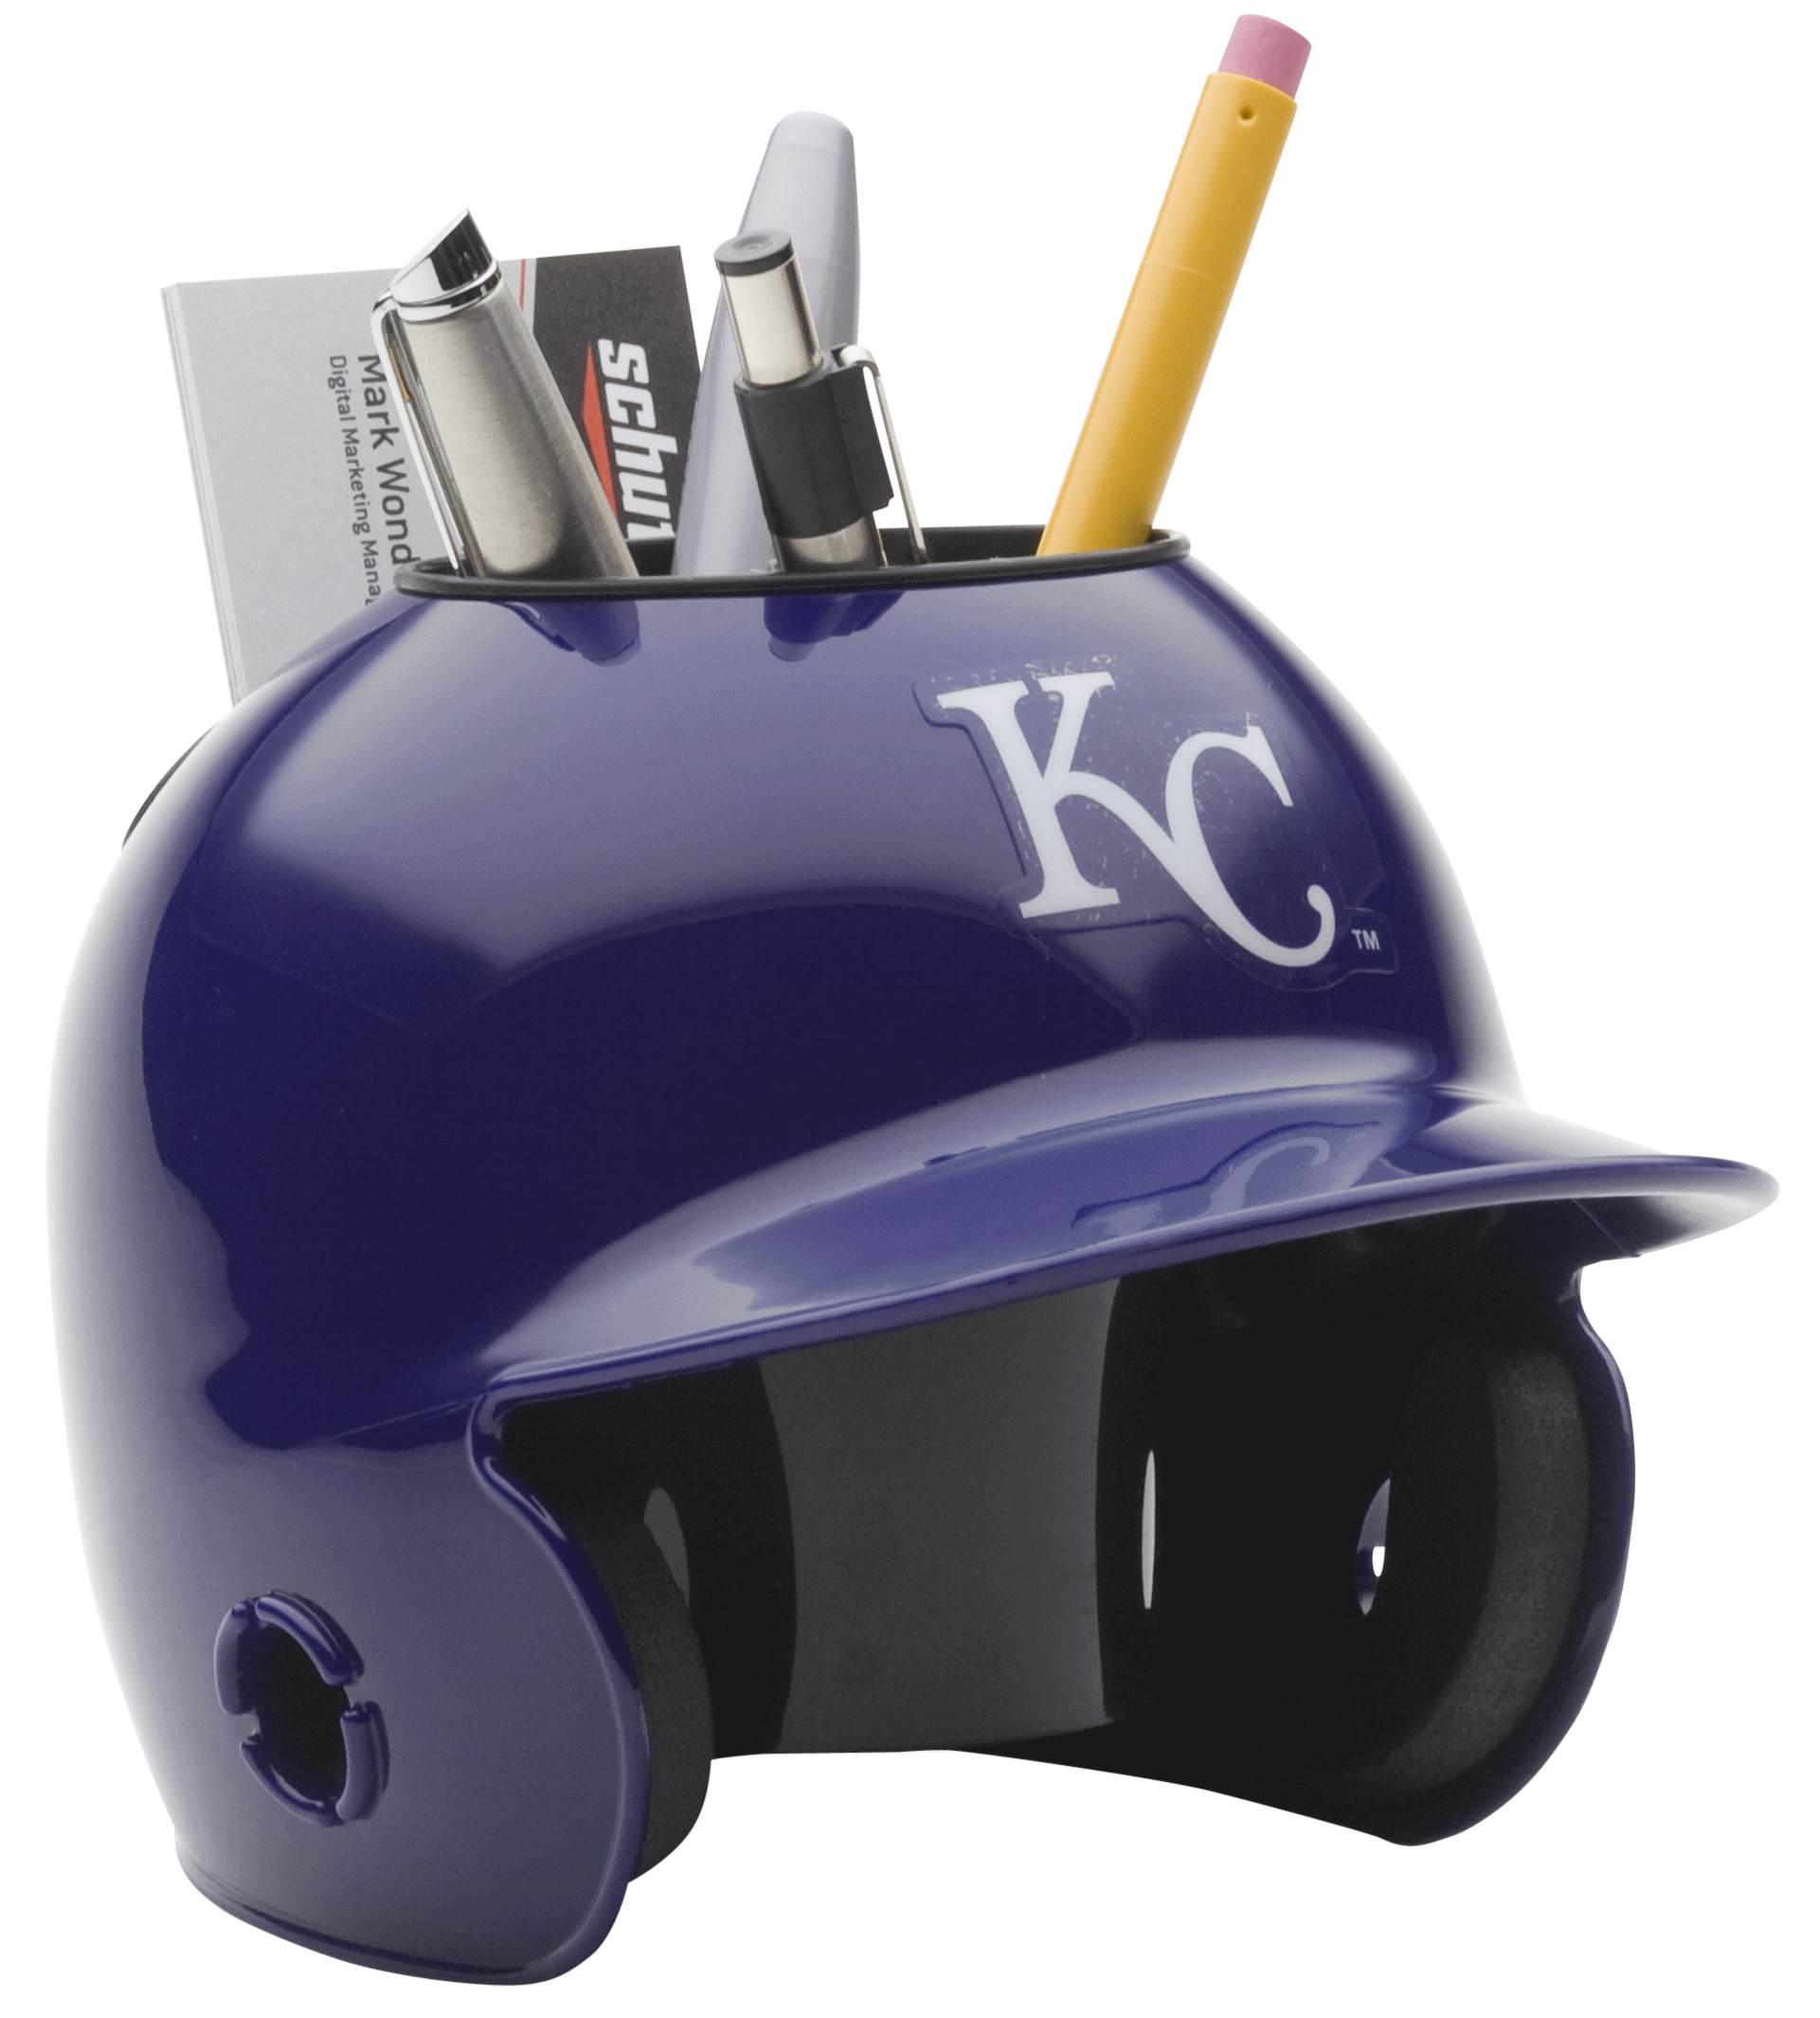 Kansas City Royals Miniature Batters Helmet Desk Caddy